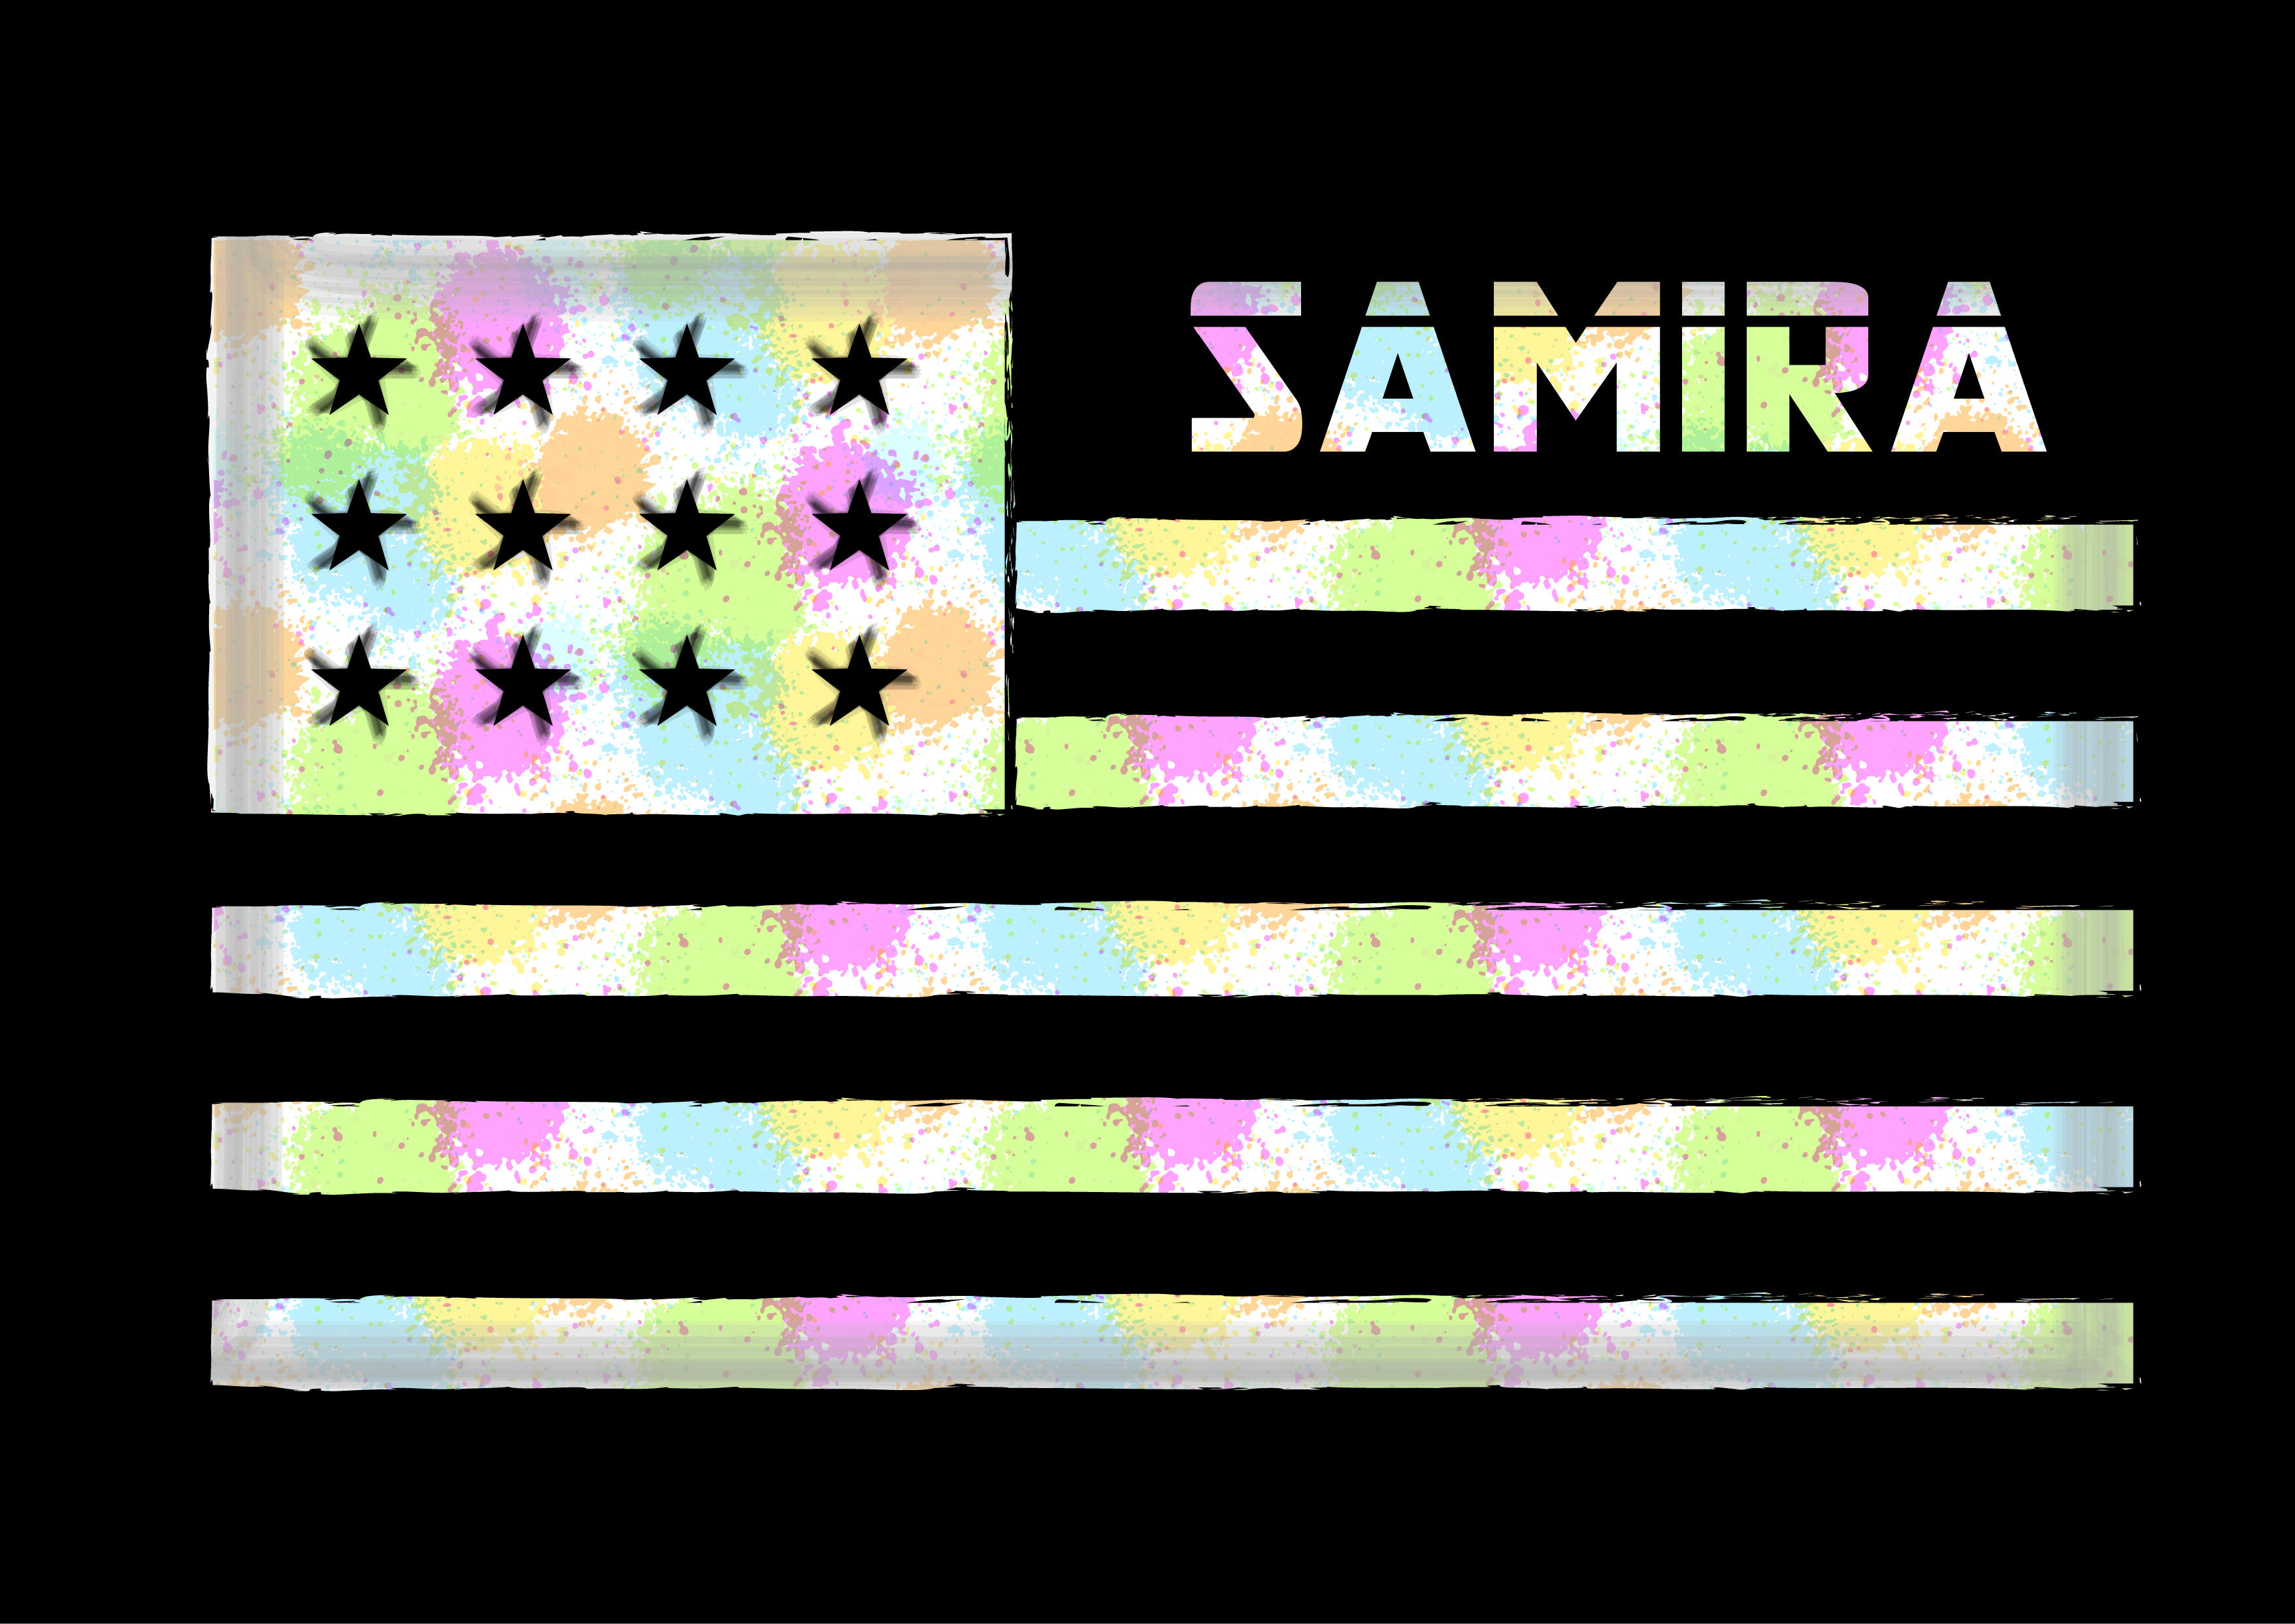 Download Free Samira Graphic By Shirtgraphic Creative Fabrica for Cricut Explore, Silhouette and other cutting machines.